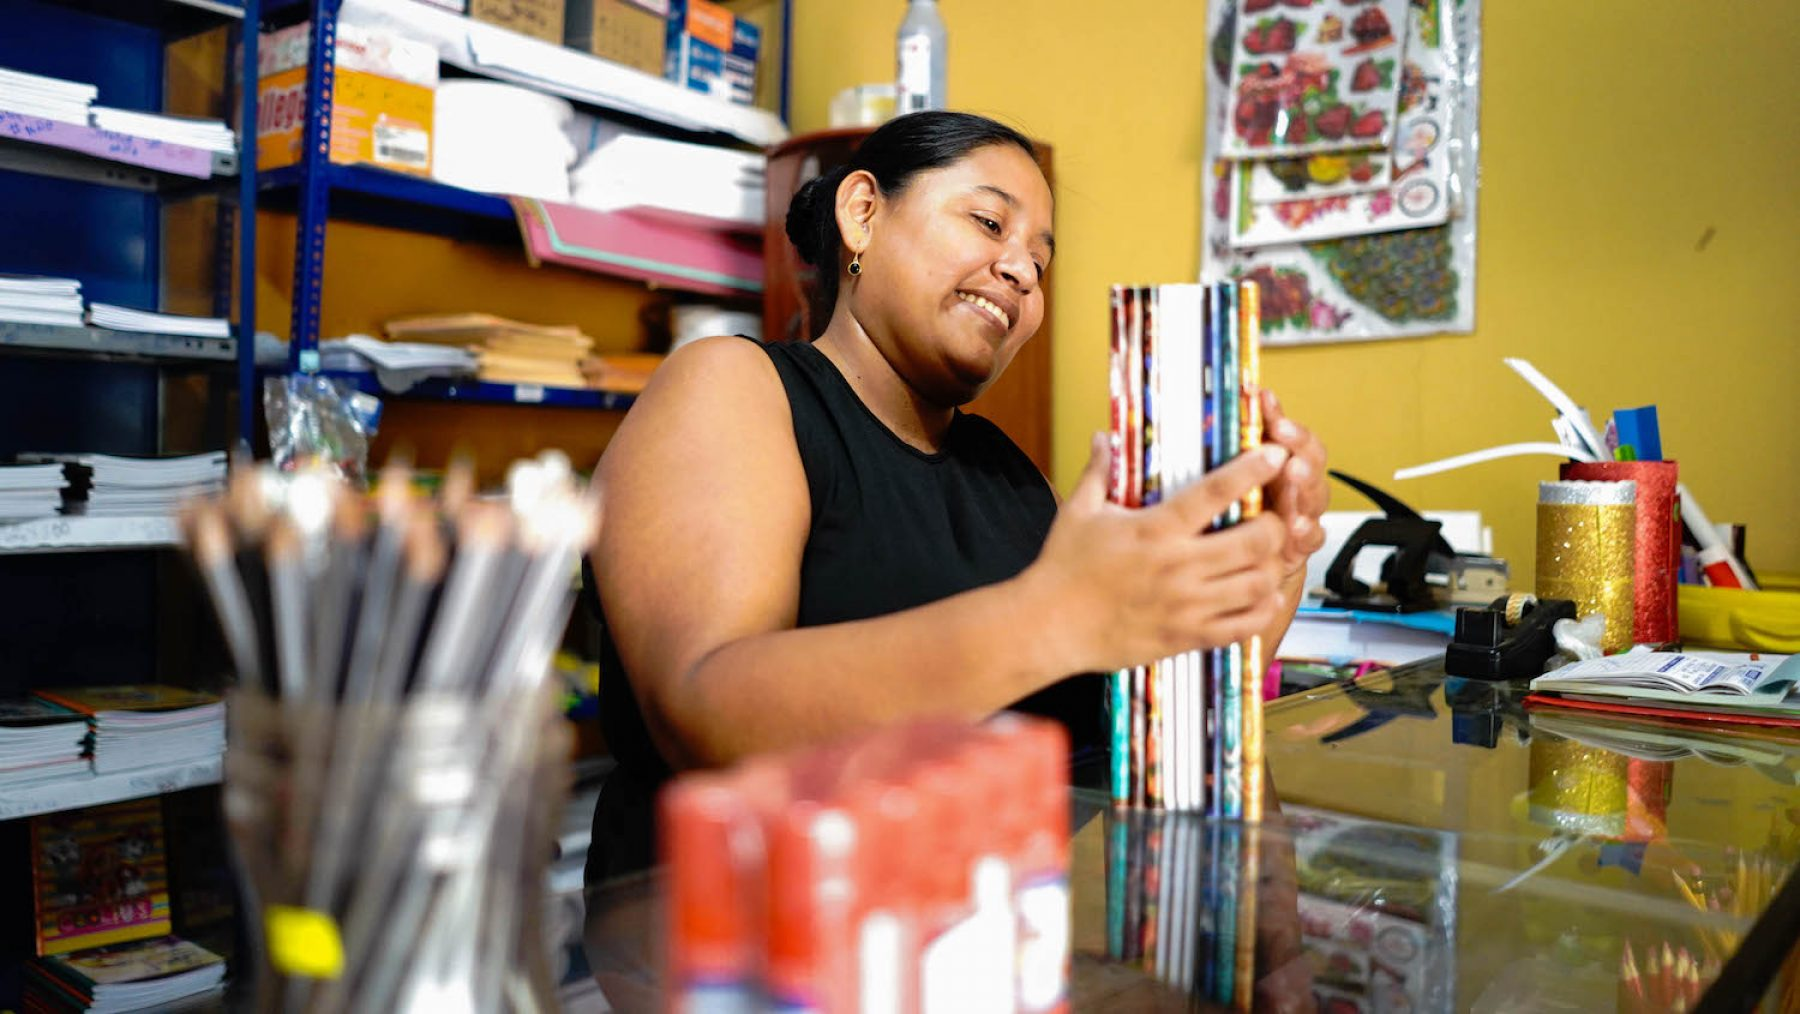 Image for Funding female entrepreneurs: the Peruvian businesswoman challenging a global financial sector that's stacked against women